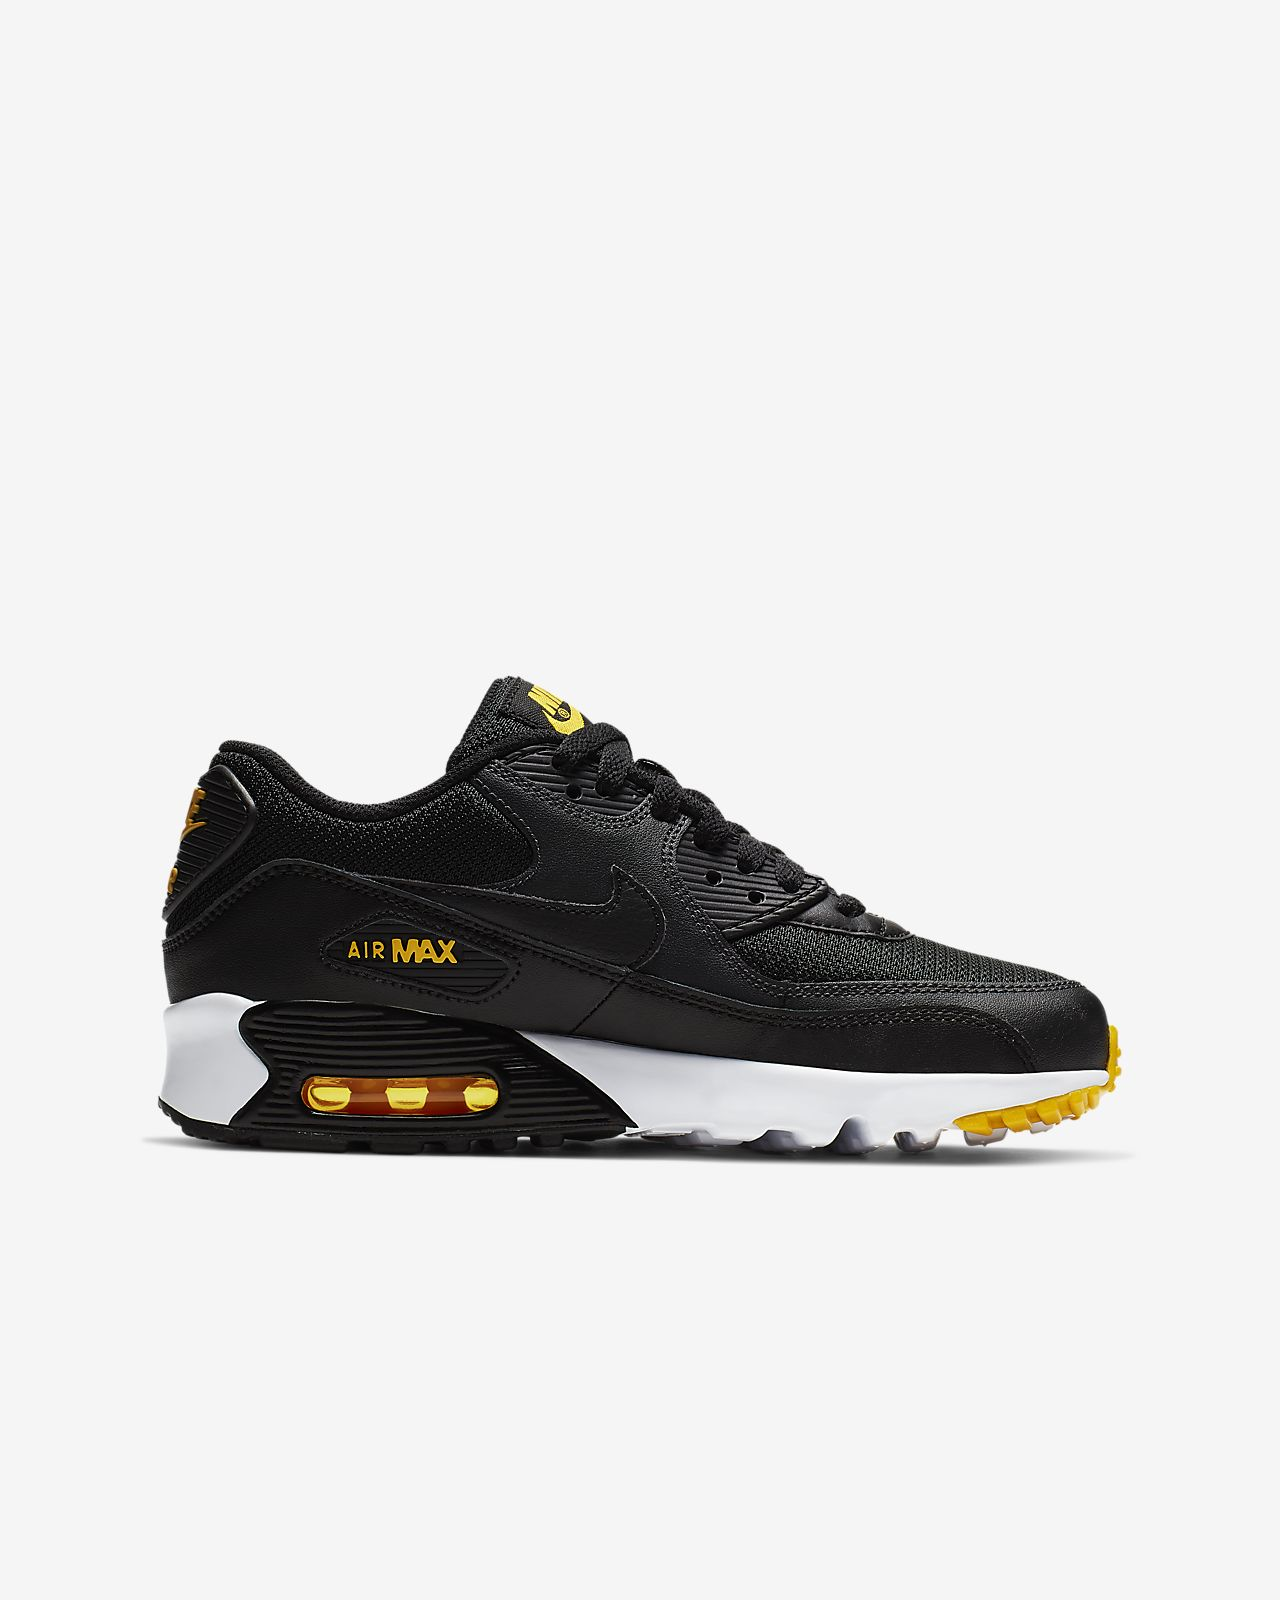 best website f437d b6c6f ... Sko Nike Air Max 90 Mesh för ungdom